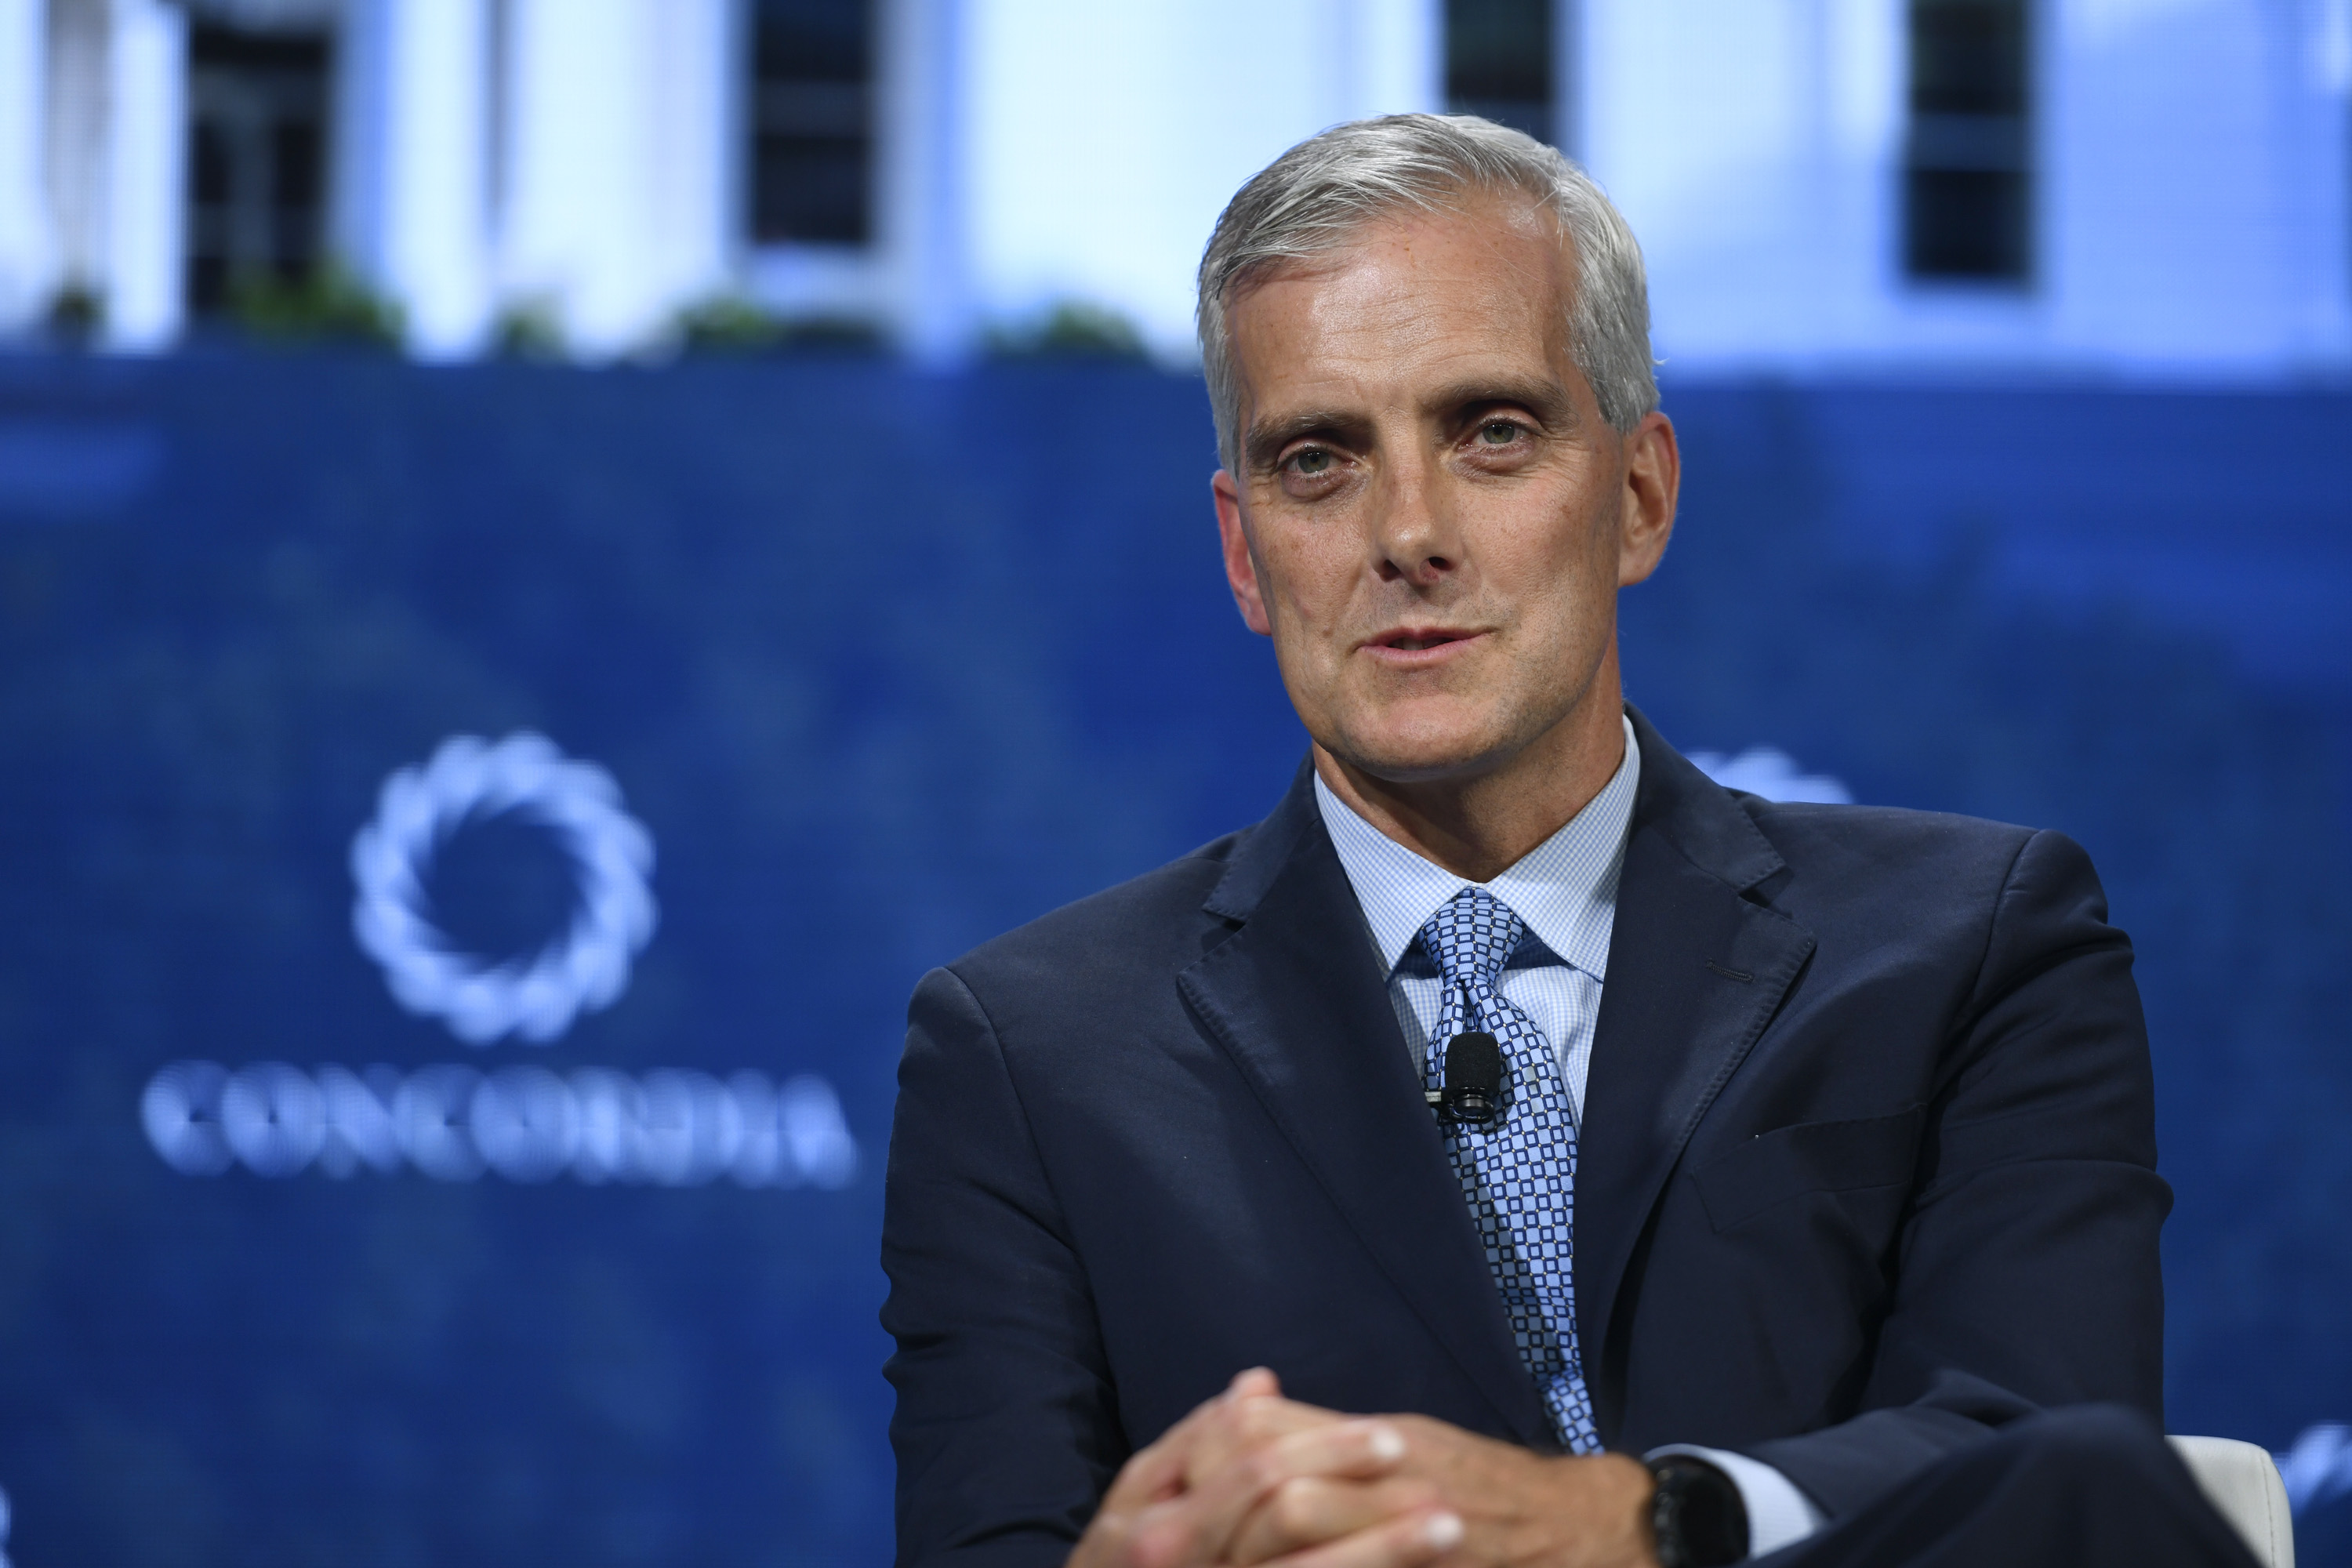 Denis McDonough speaks during the 2018 Concordia Annual Summit in New York.